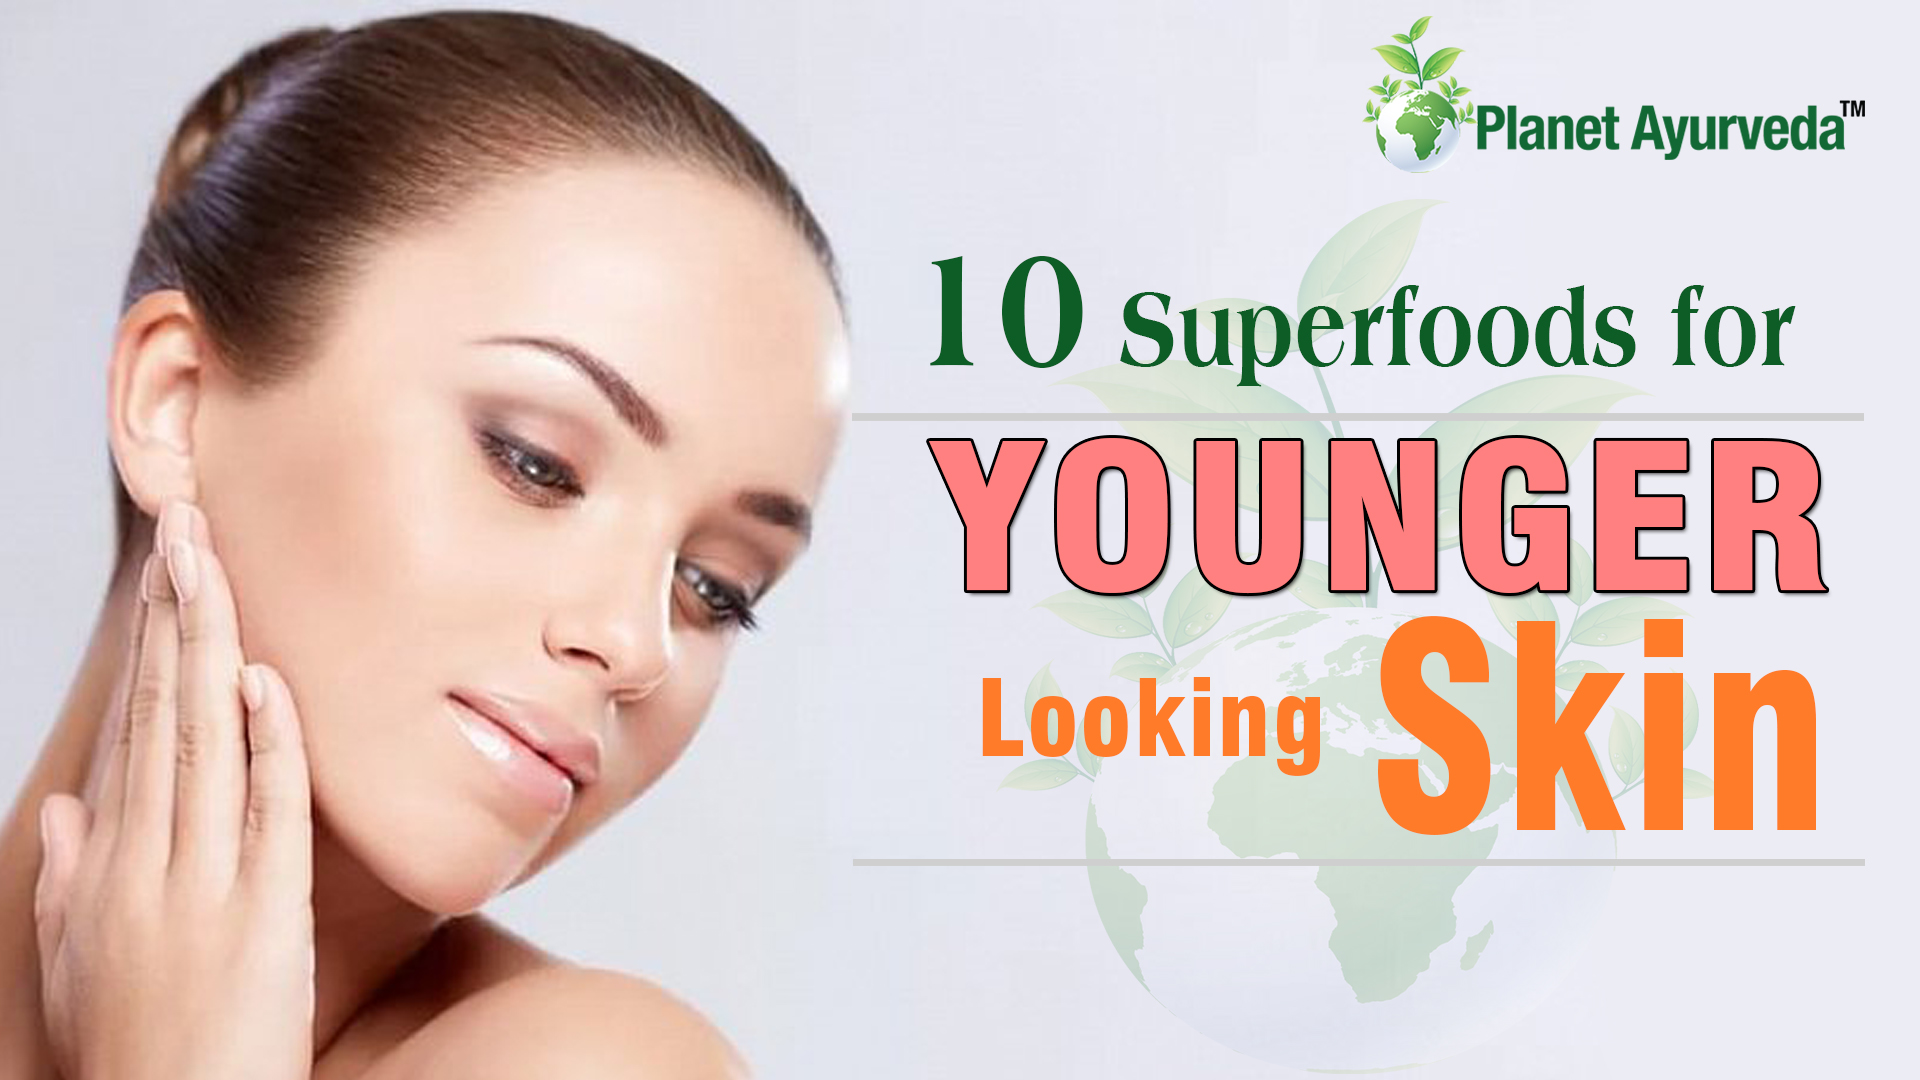 10 Super Foods for YOUNGER LOOKING SKIN